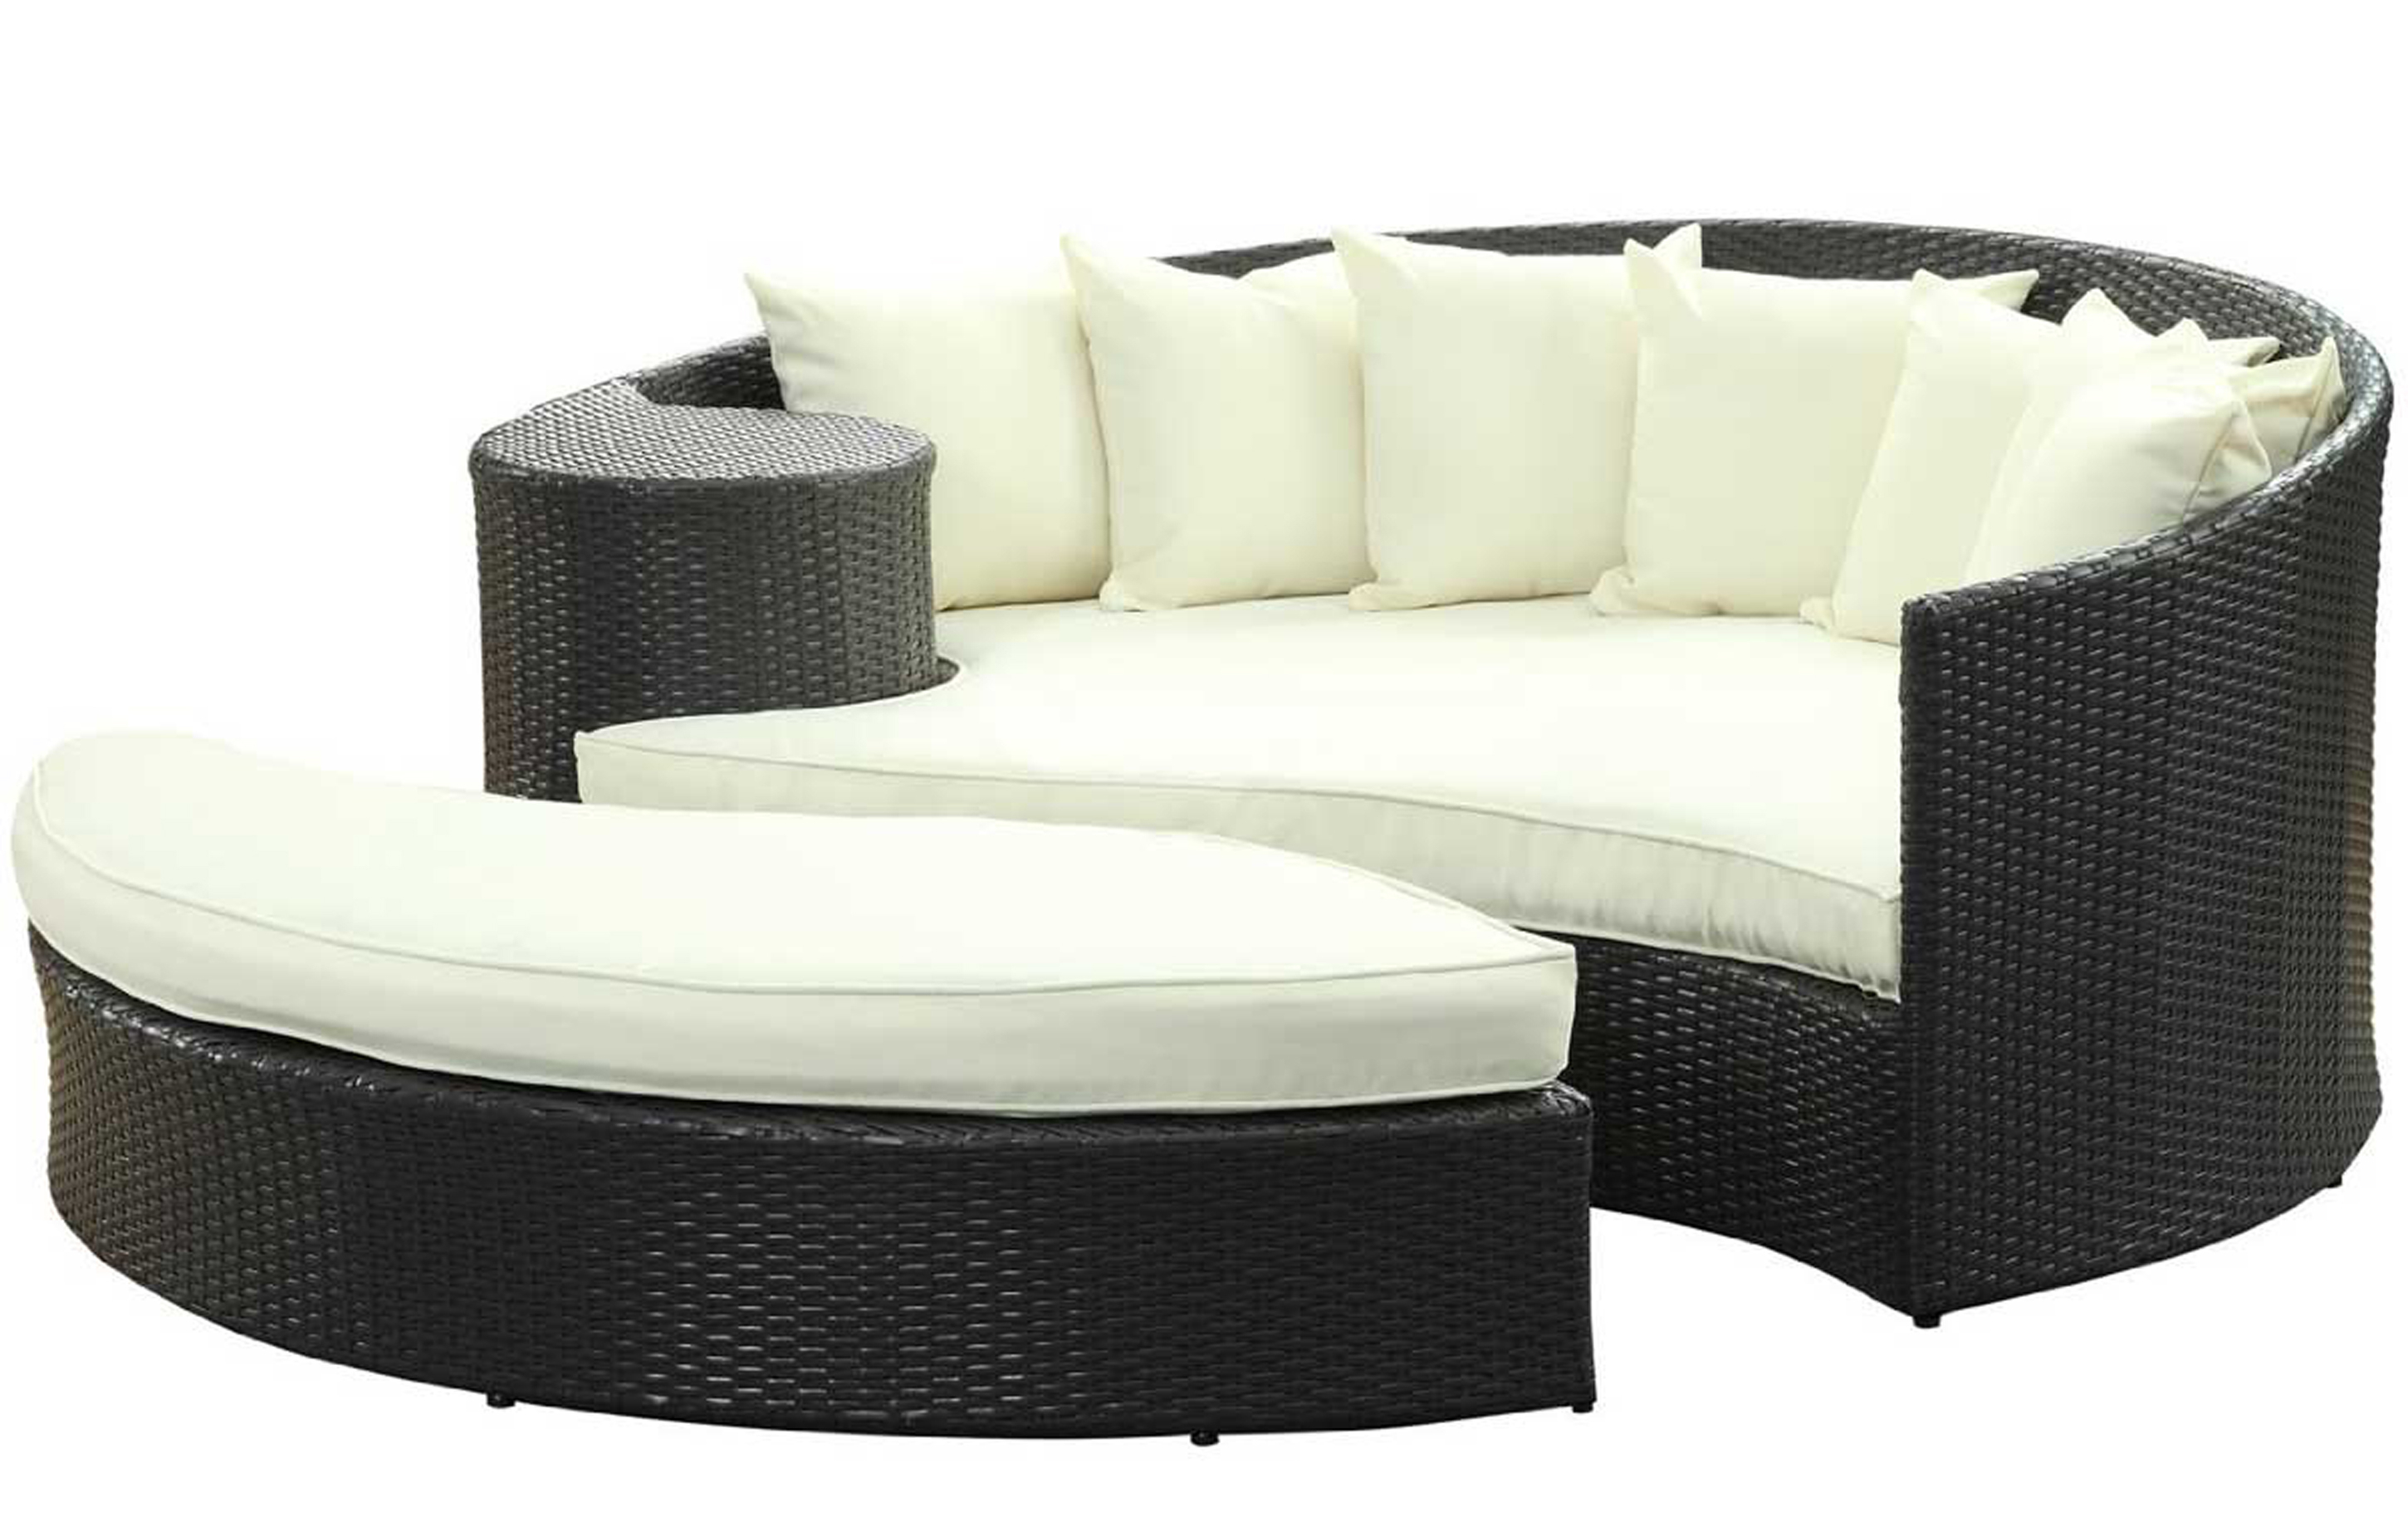 Luxury Modern Outdoor Furniture Design Idea With Black Sofa With White Seat Cushions And White Throw Pillows Affordable Modern Outdoor Furniture Design Ideas (Image 111 of 123)